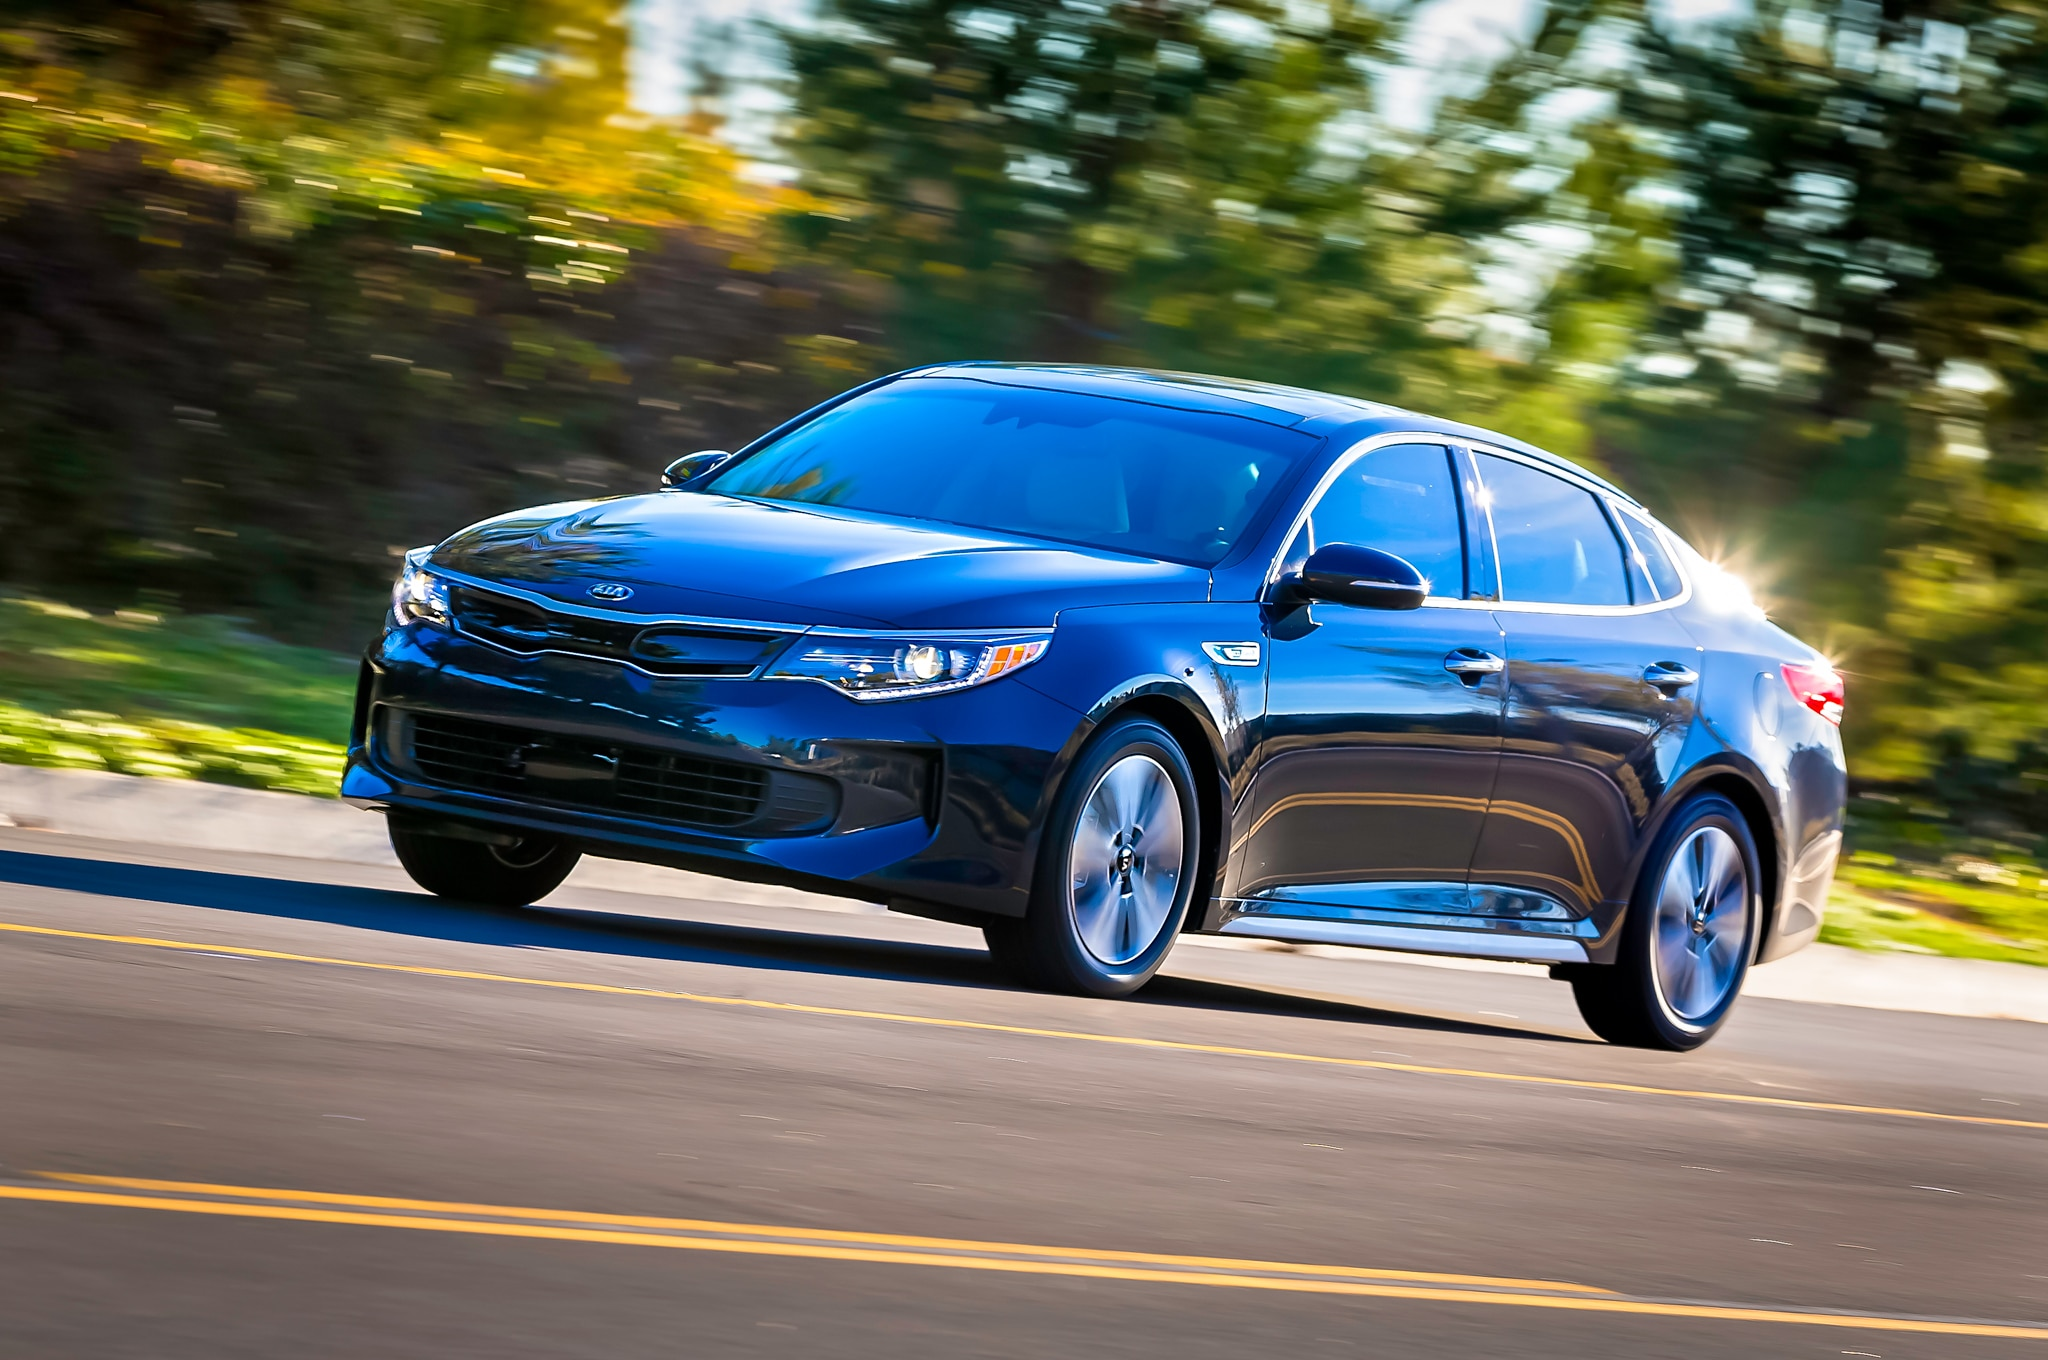 2017 kia optima hybrid brings improved efficiency new plug in model. Black Bedroom Furniture Sets. Home Design Ideas